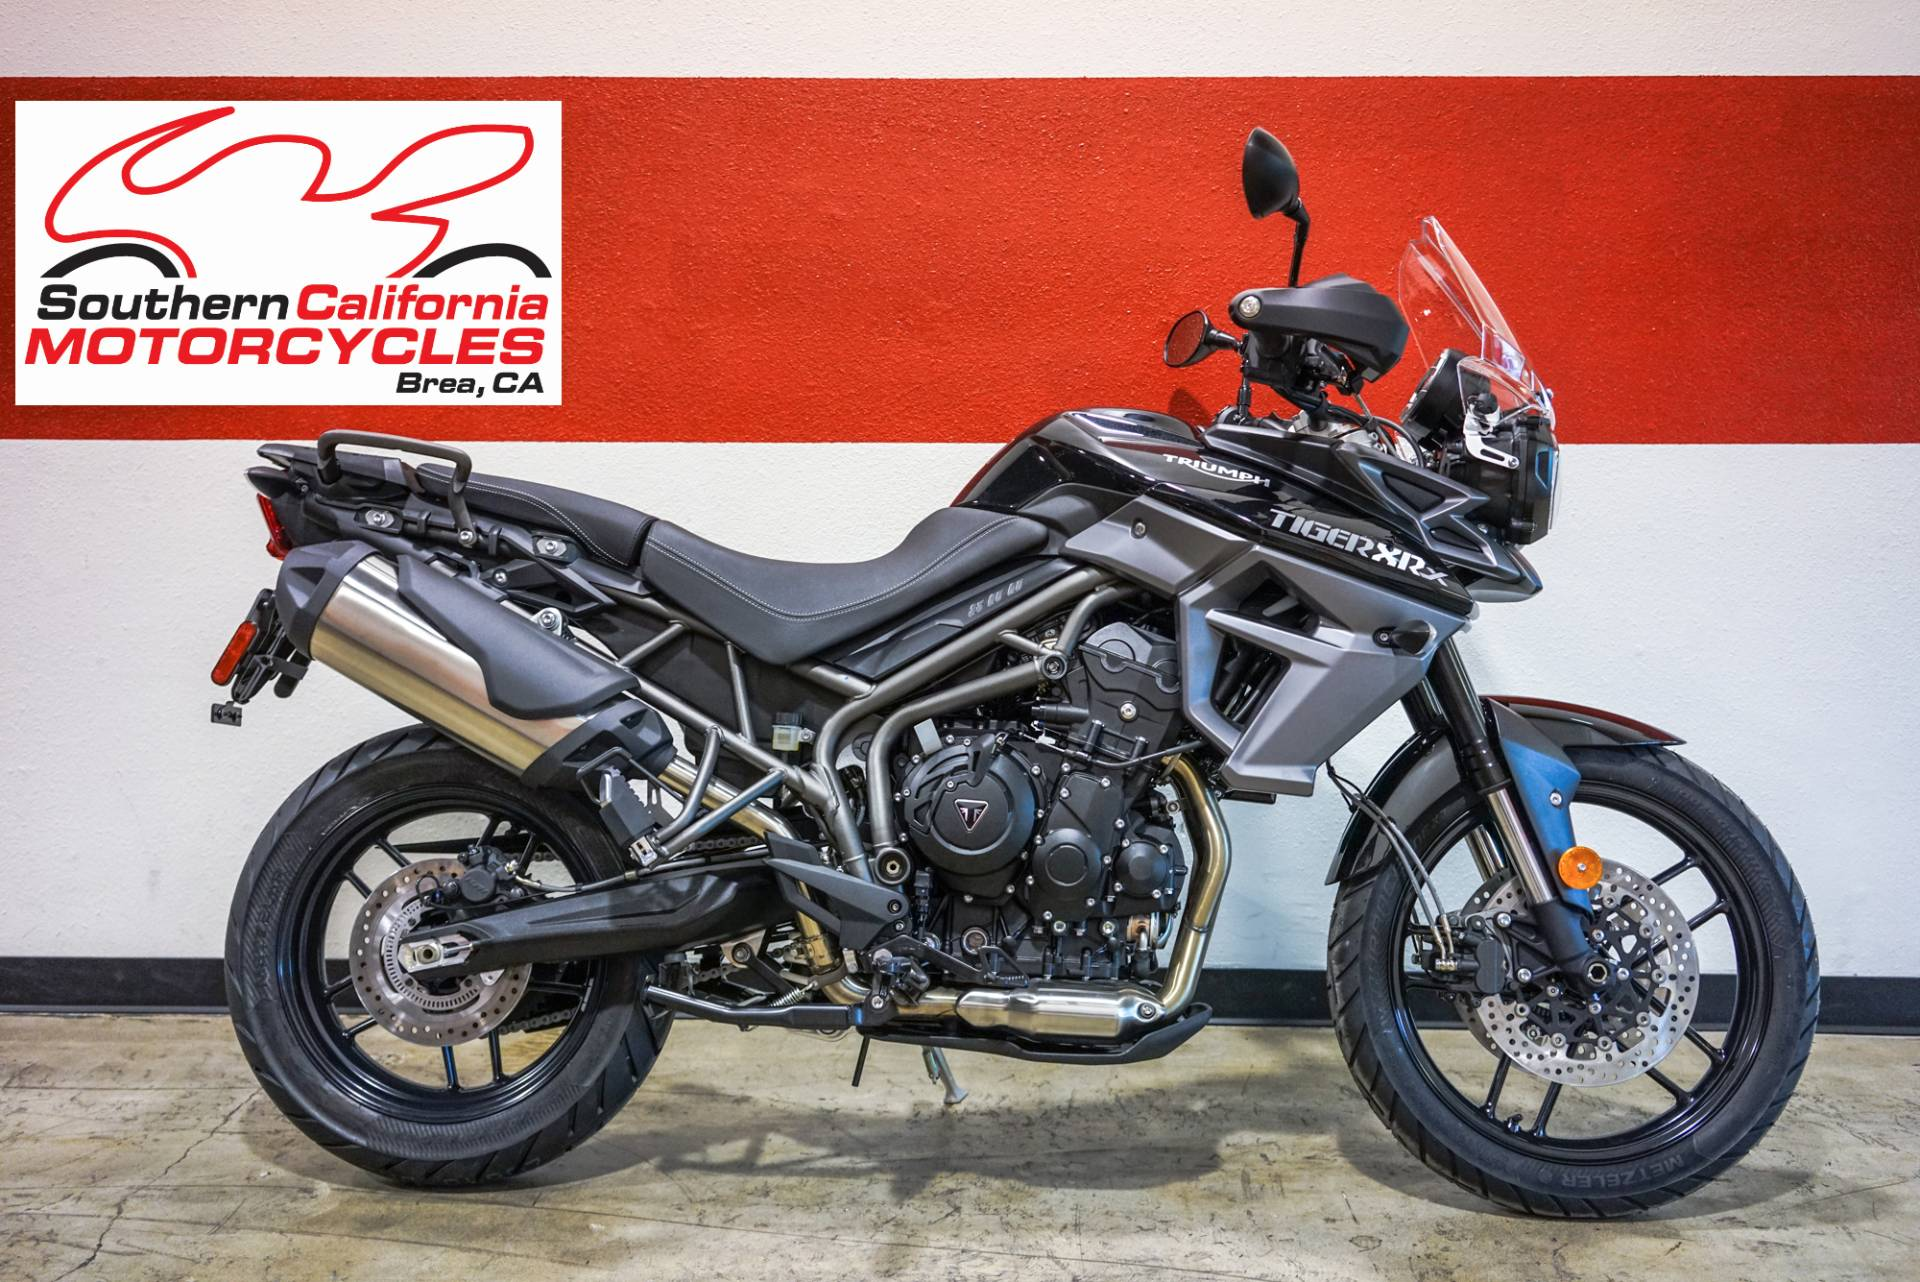 New 2018 Triumph Tiger 800 Xrx Motorcycles In Brea Ca